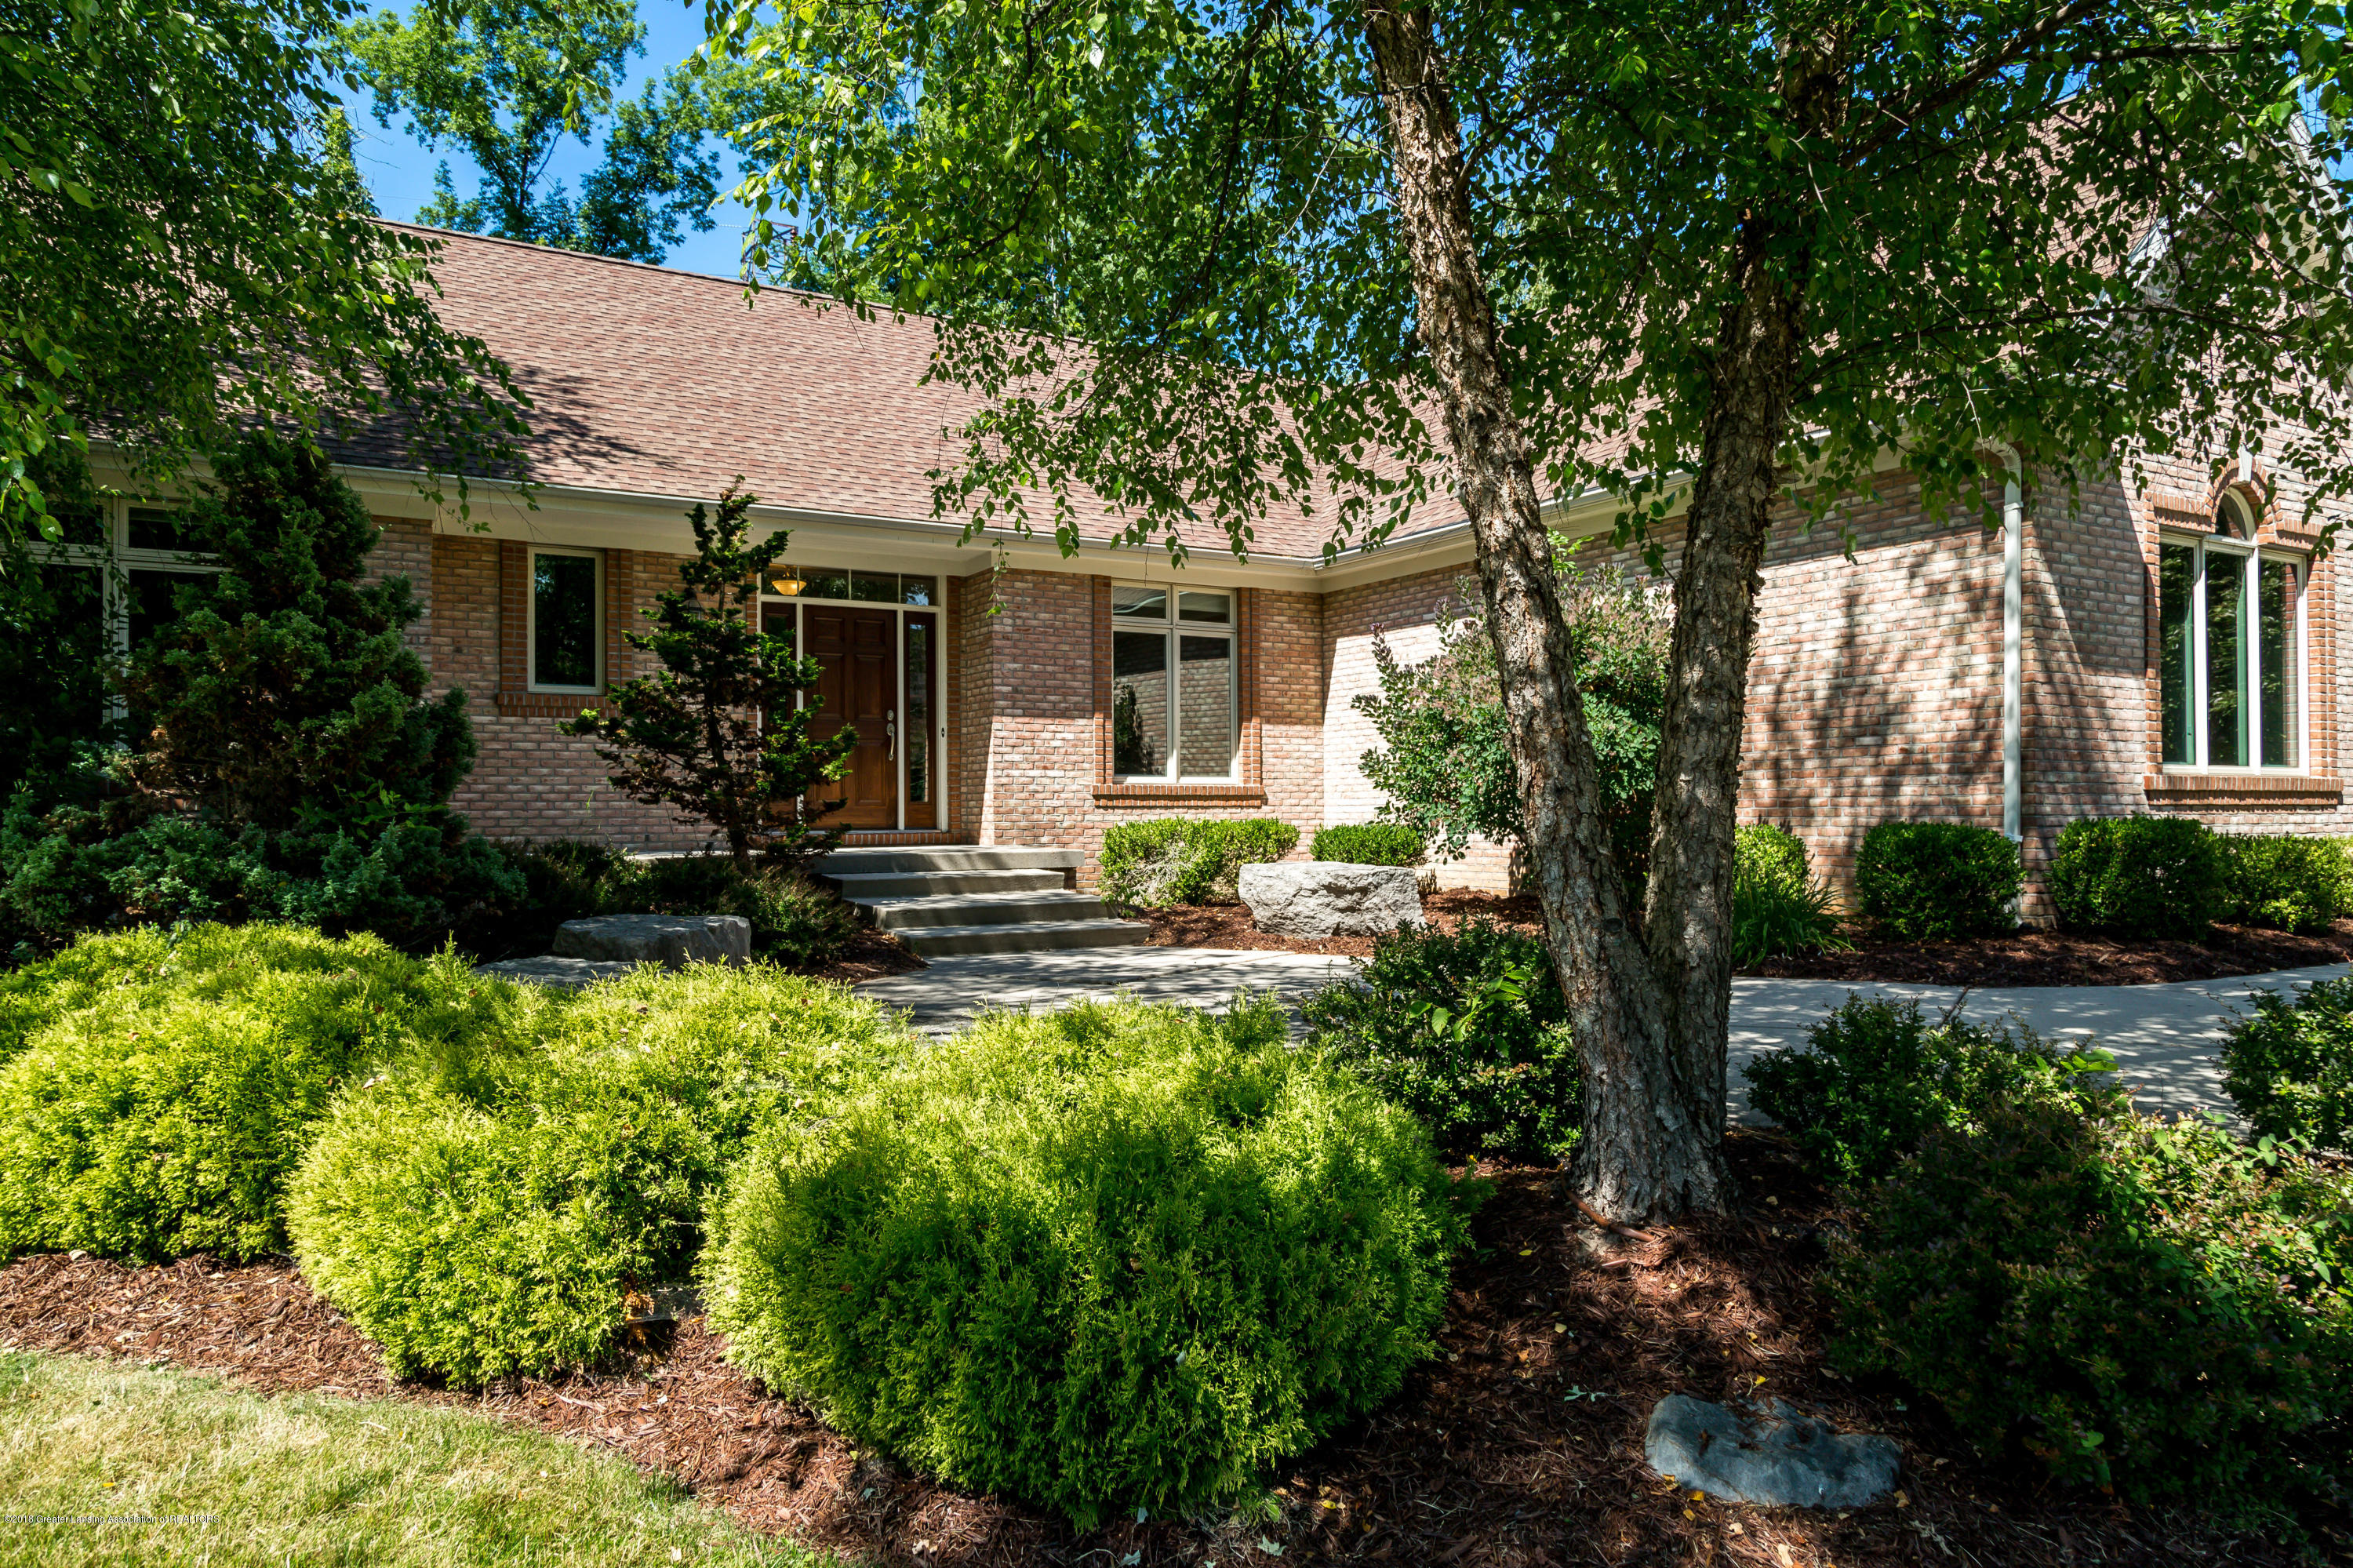 2016 Belwood Dr - 20180710-942A3186 - 4